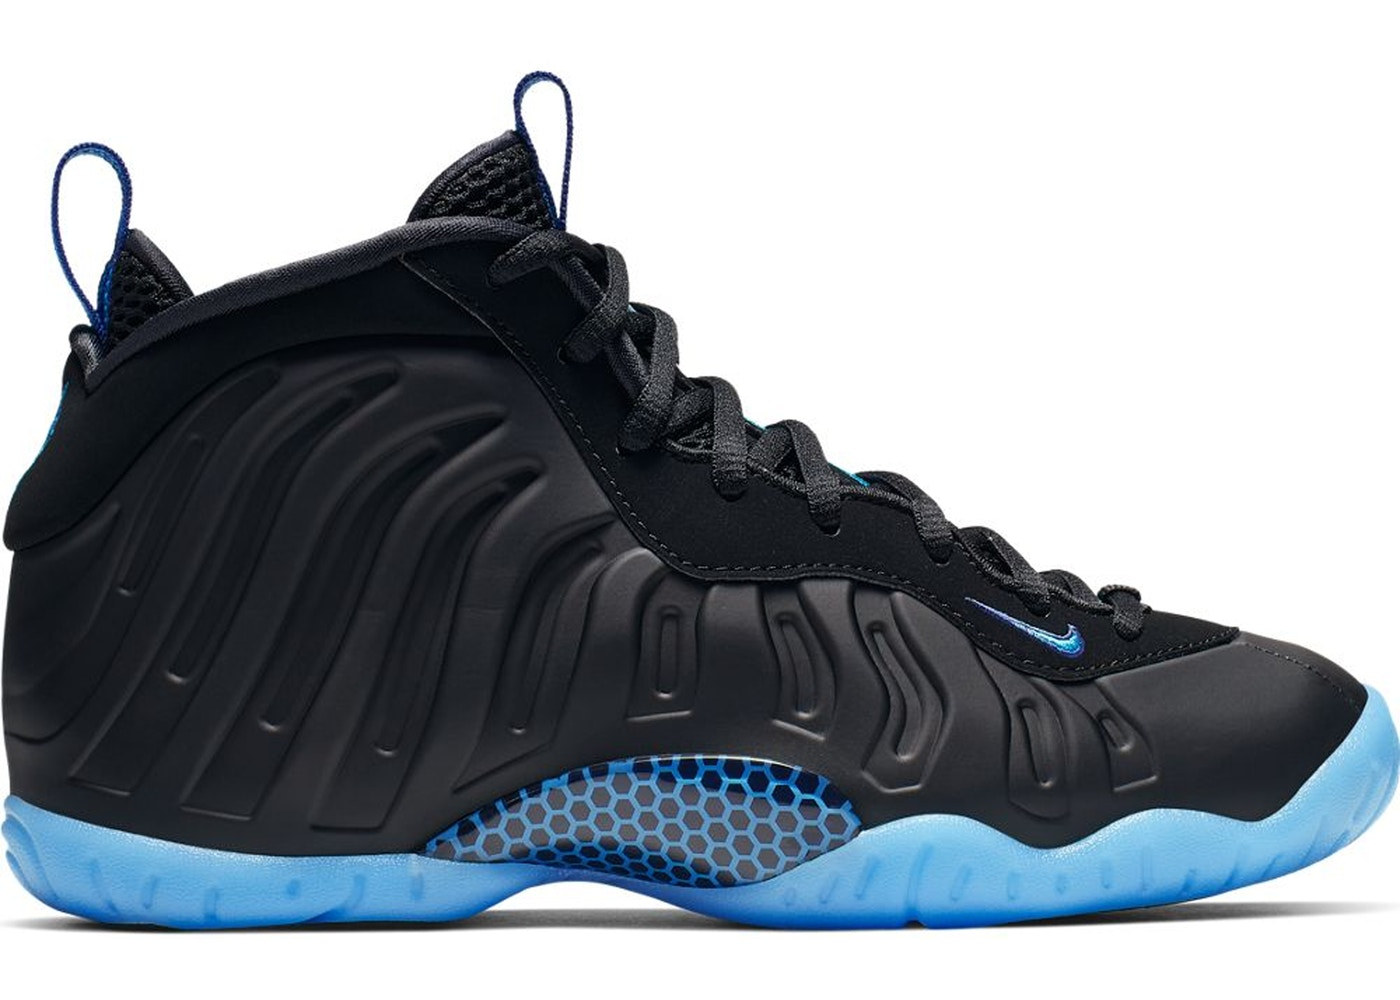 4f5a2c224c5 Air Foamposite One All-Star 2019 (GS) - CJ0839-001